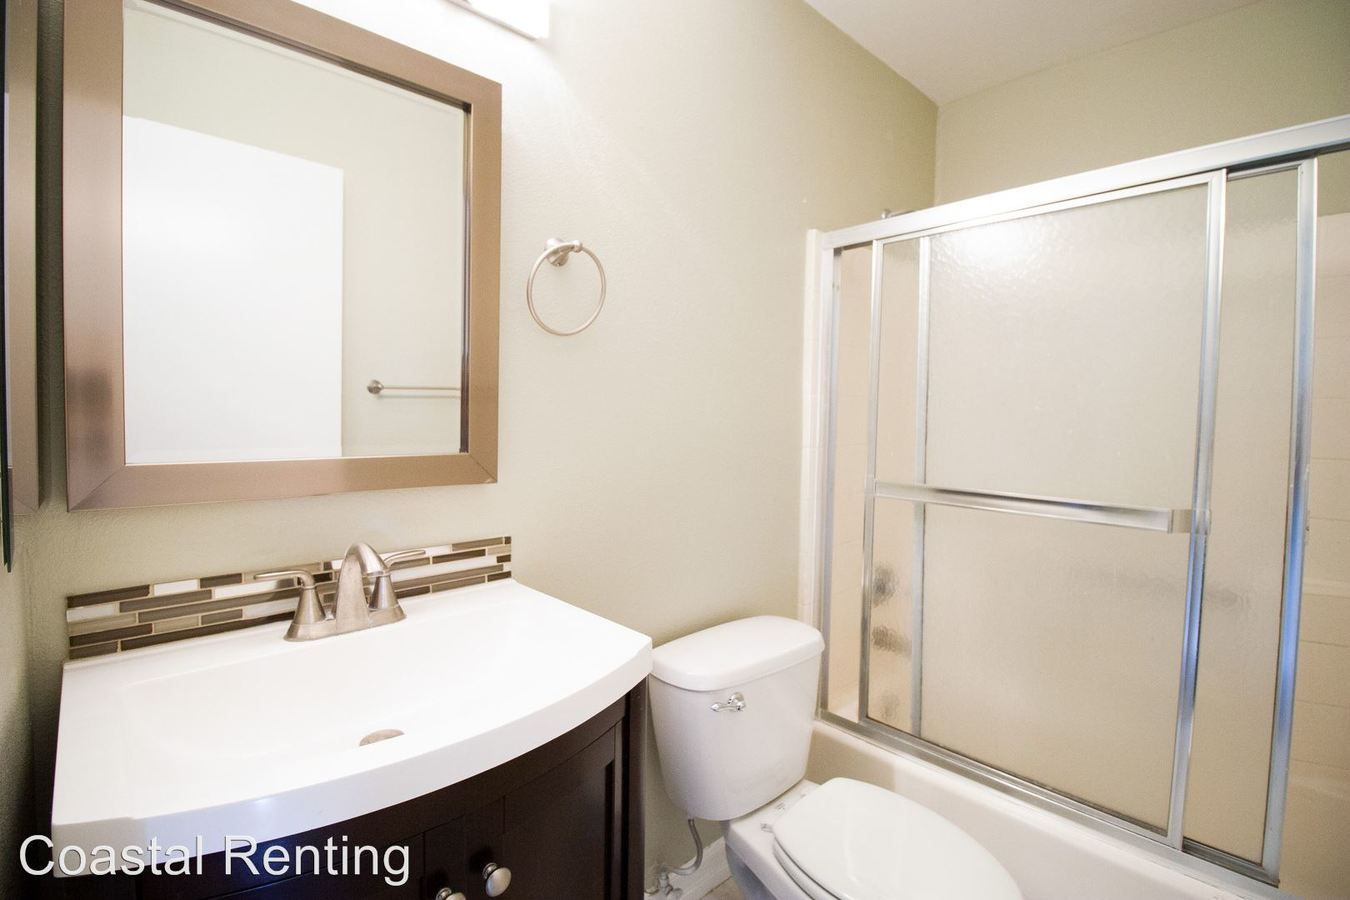 2 Bedrooms 2 Bathrooms Apartment for rent at 2015 E. 3rd Street in Long Beach, CA